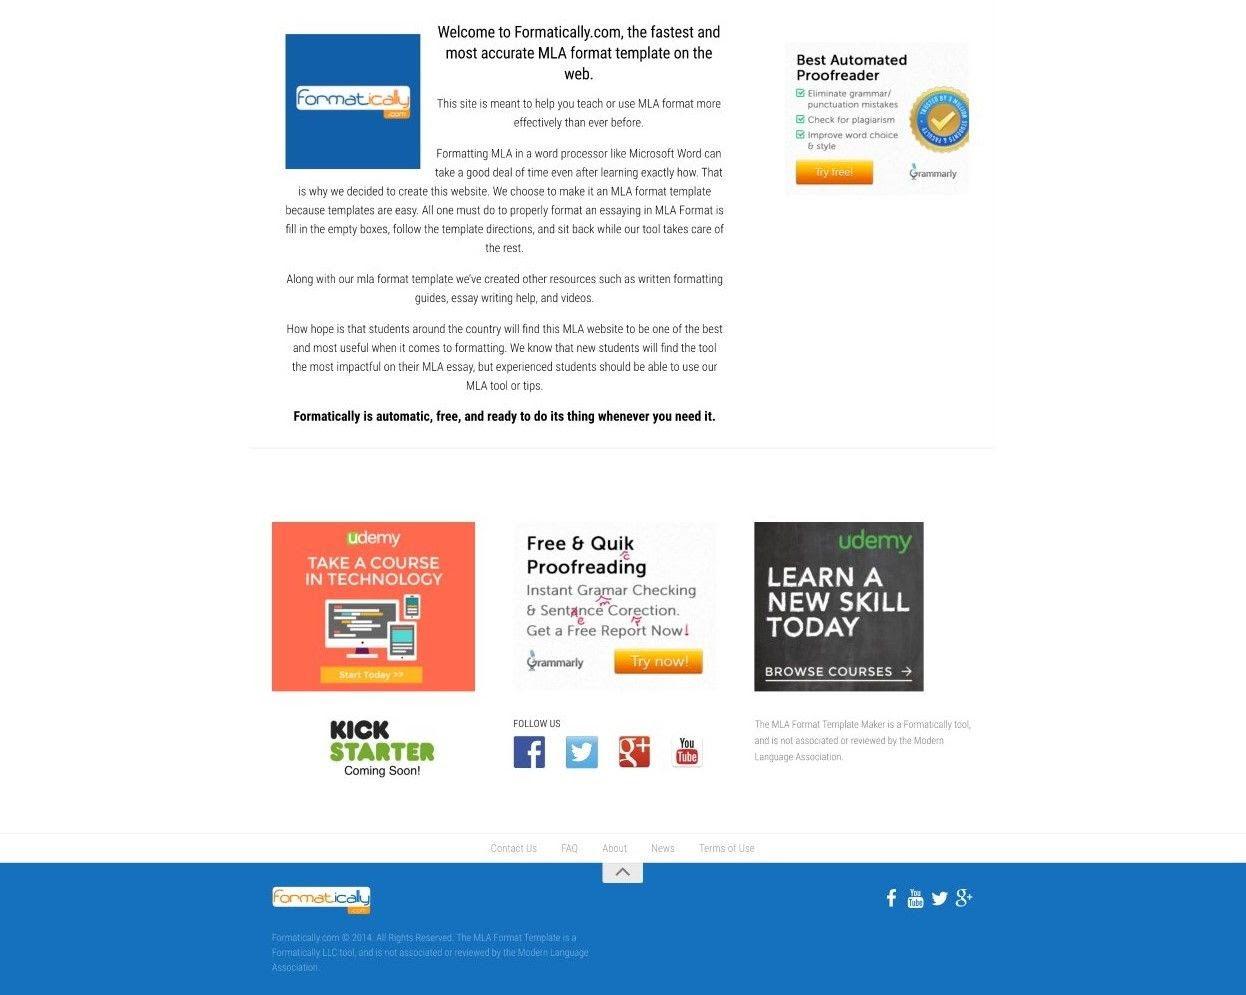 Formatically landing page